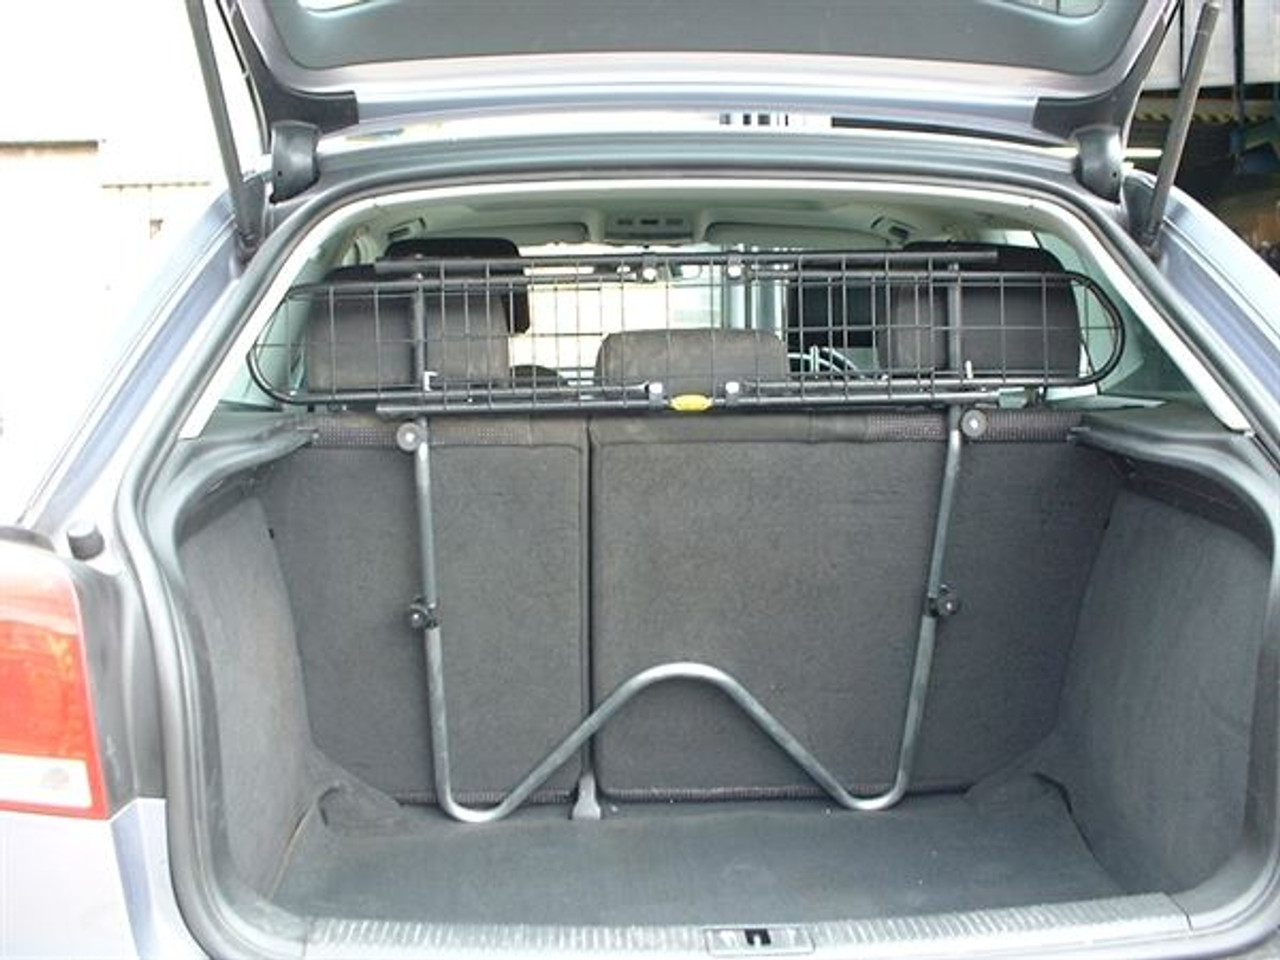 Saunders W93 Dog Guard For Toyota Prius 2009 onwards